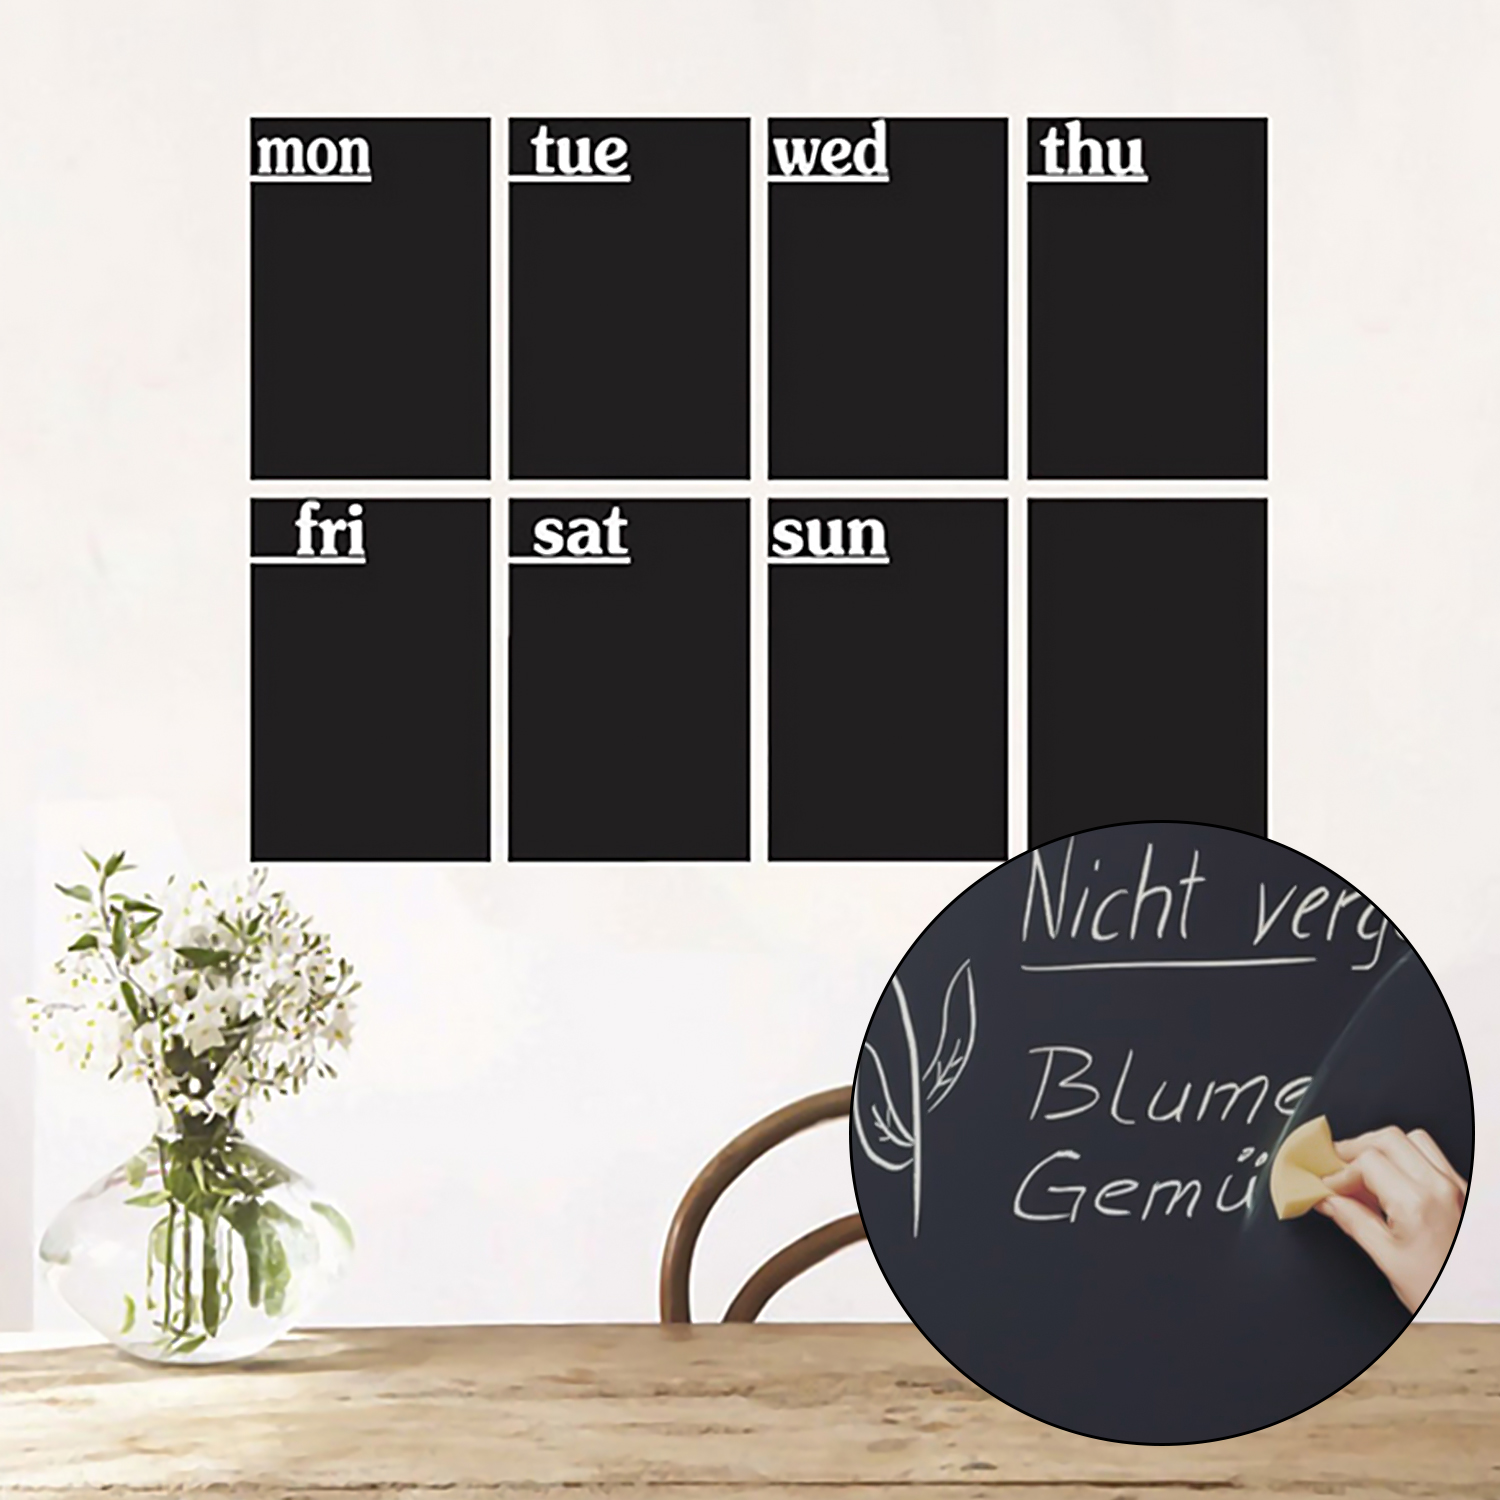 8PCS Erasable Blackboard Self Adhesive Removable Chalkboard Wall Stickers With Chalk Pen For Home School Office Supplies 30x20cm